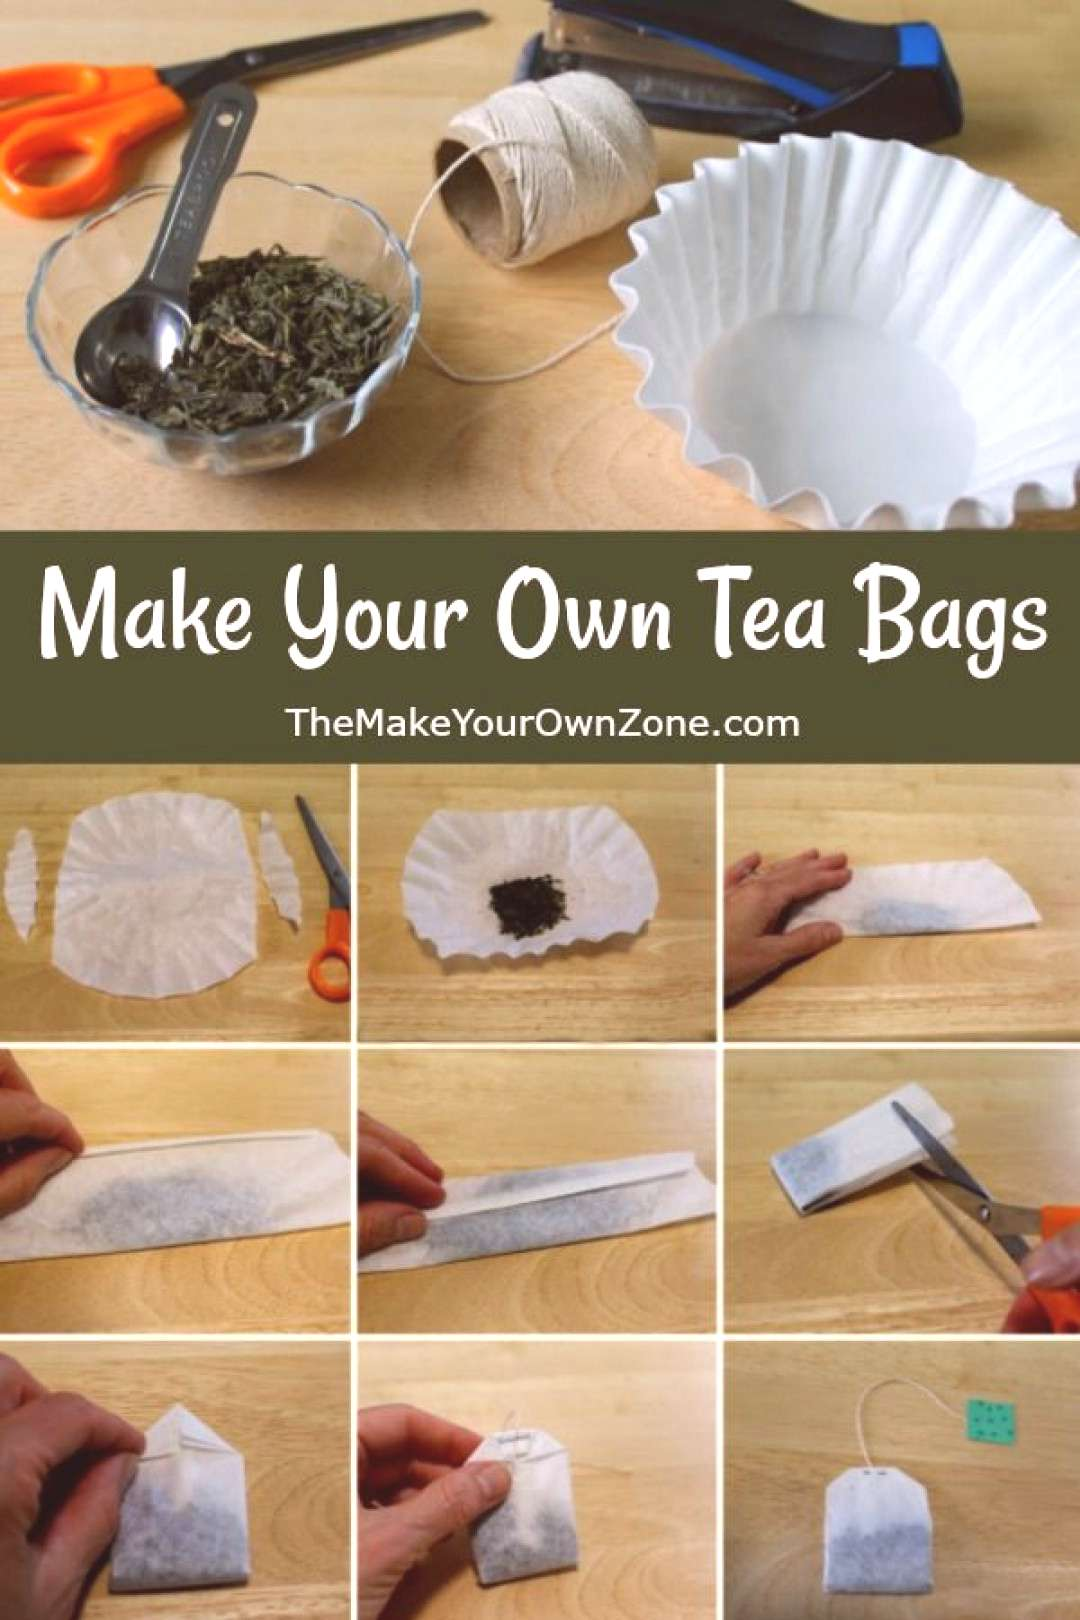 How To Make Your Own Tea Bags - Easy tutorial using coffee filters and loose tea. Perfect as homema